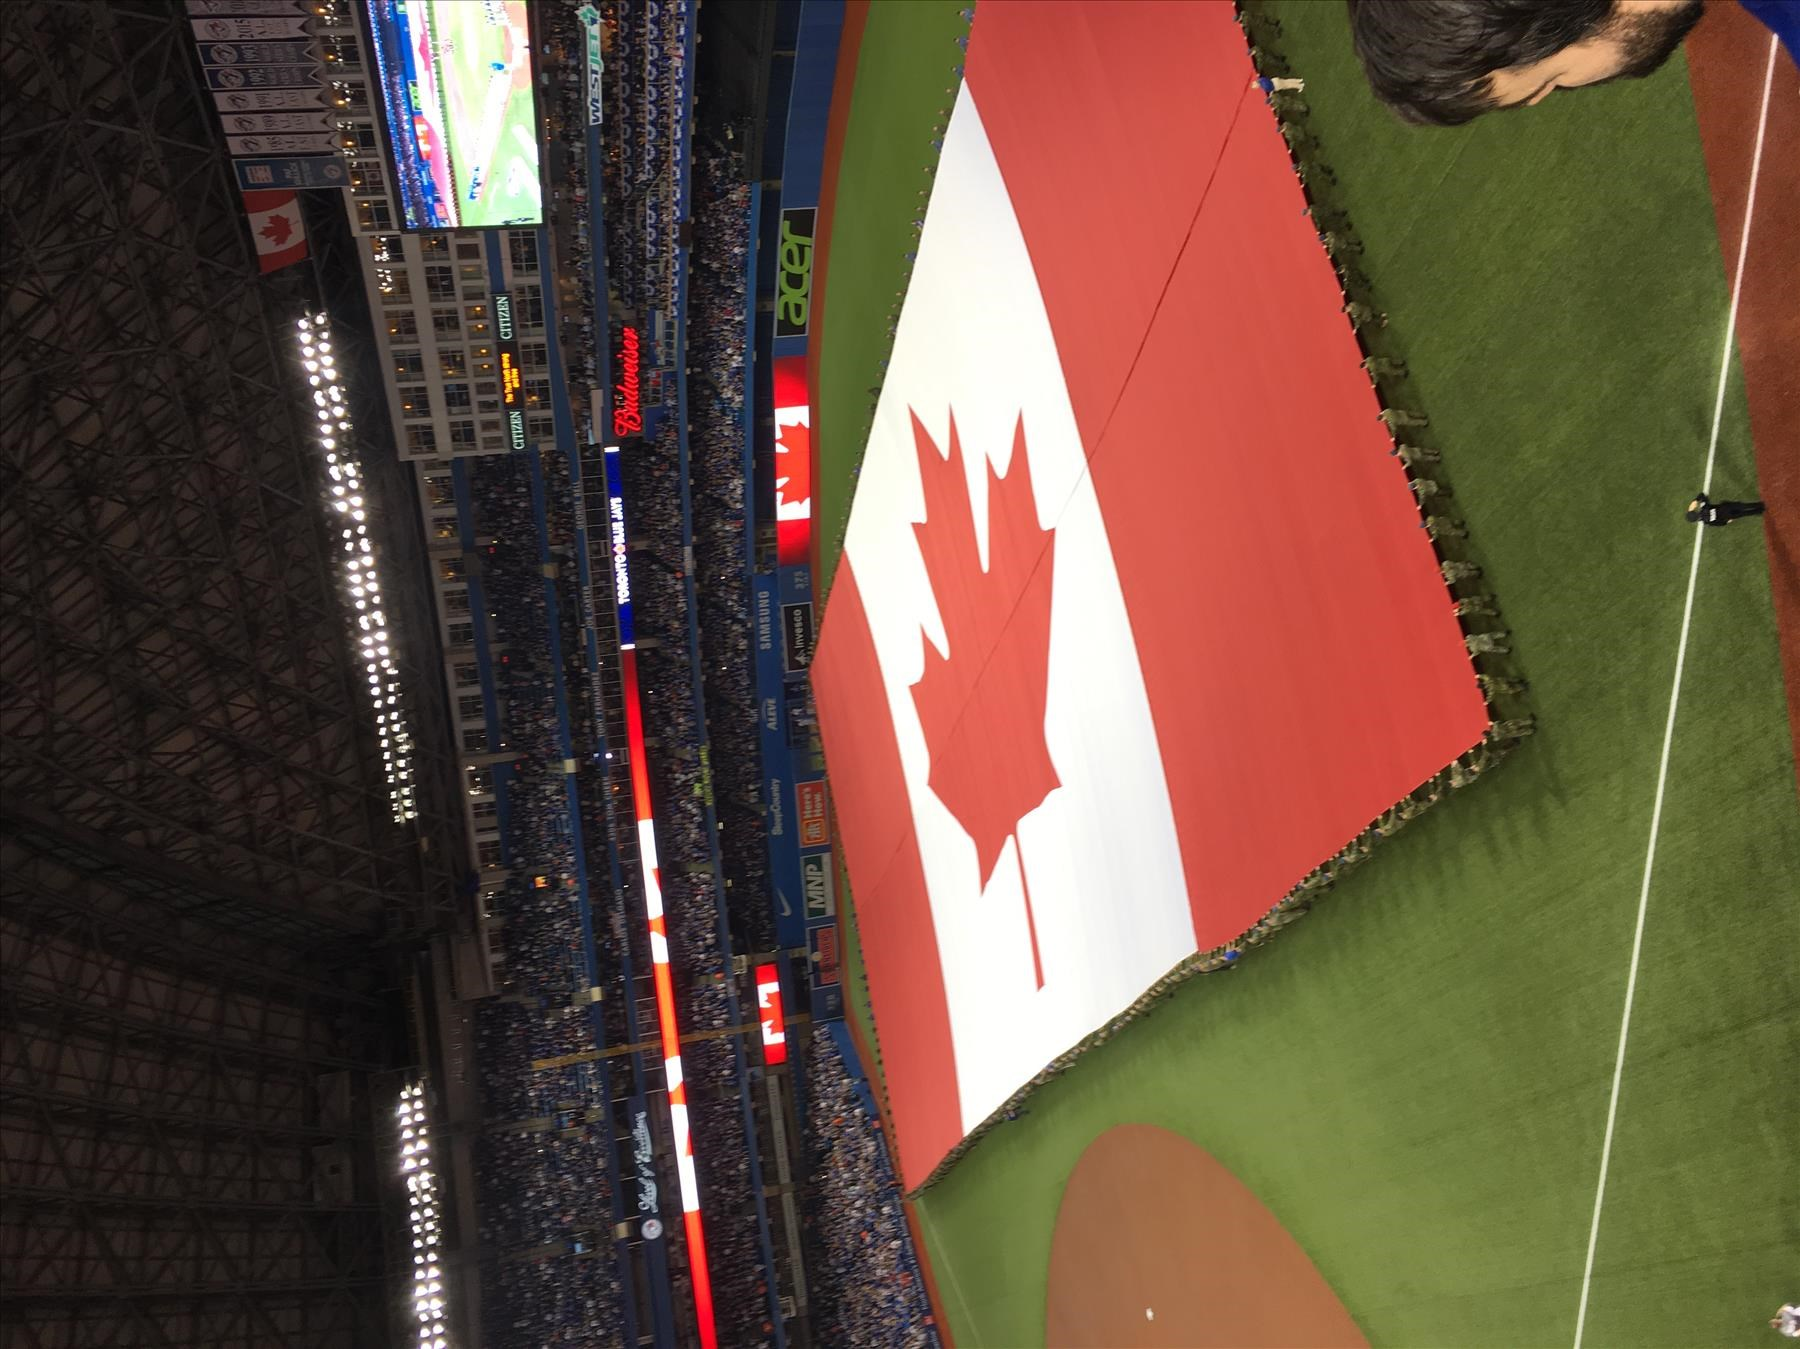 Toronto Blue Jays Tickets at The Rogers Centre to the Home Opener